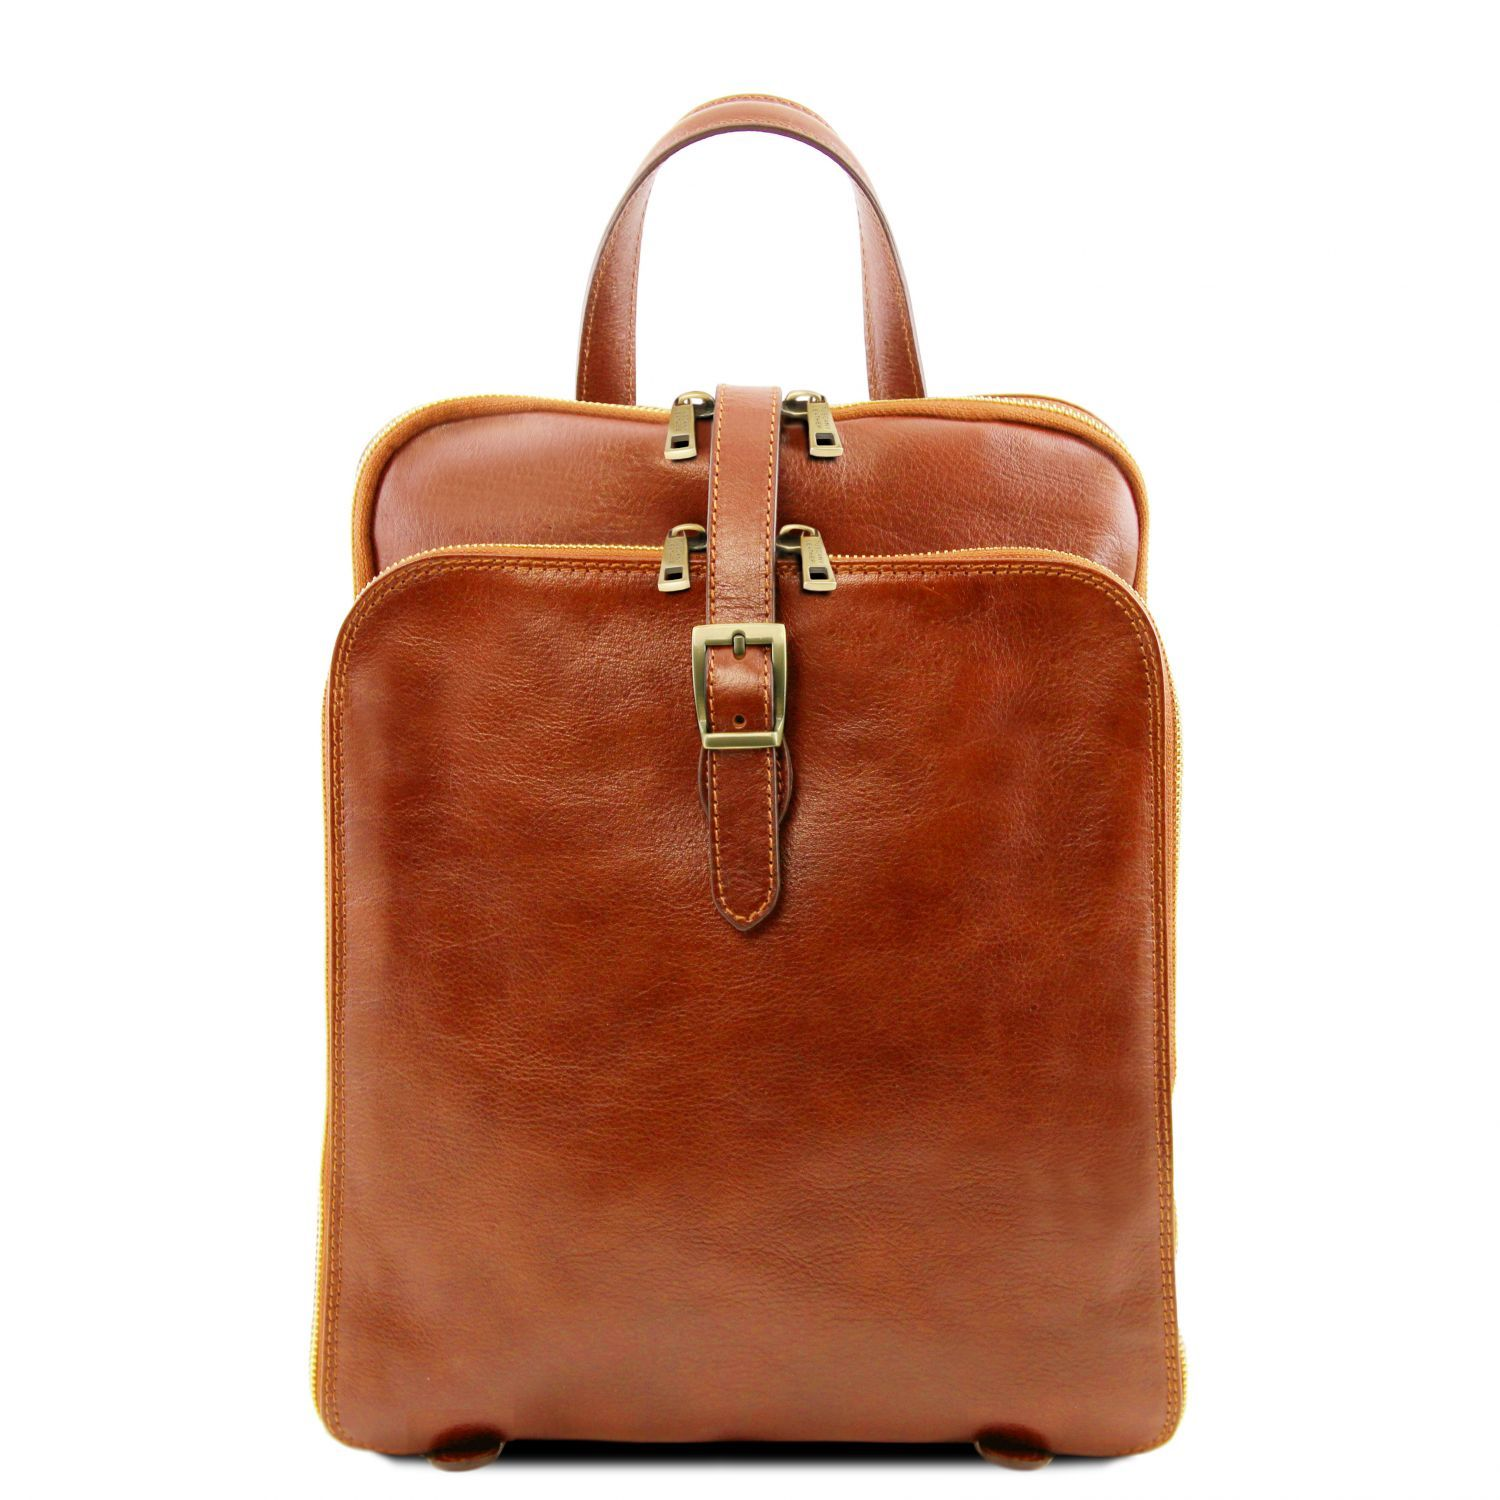 Zdjęcie 3 Compartments leather backpack Honey